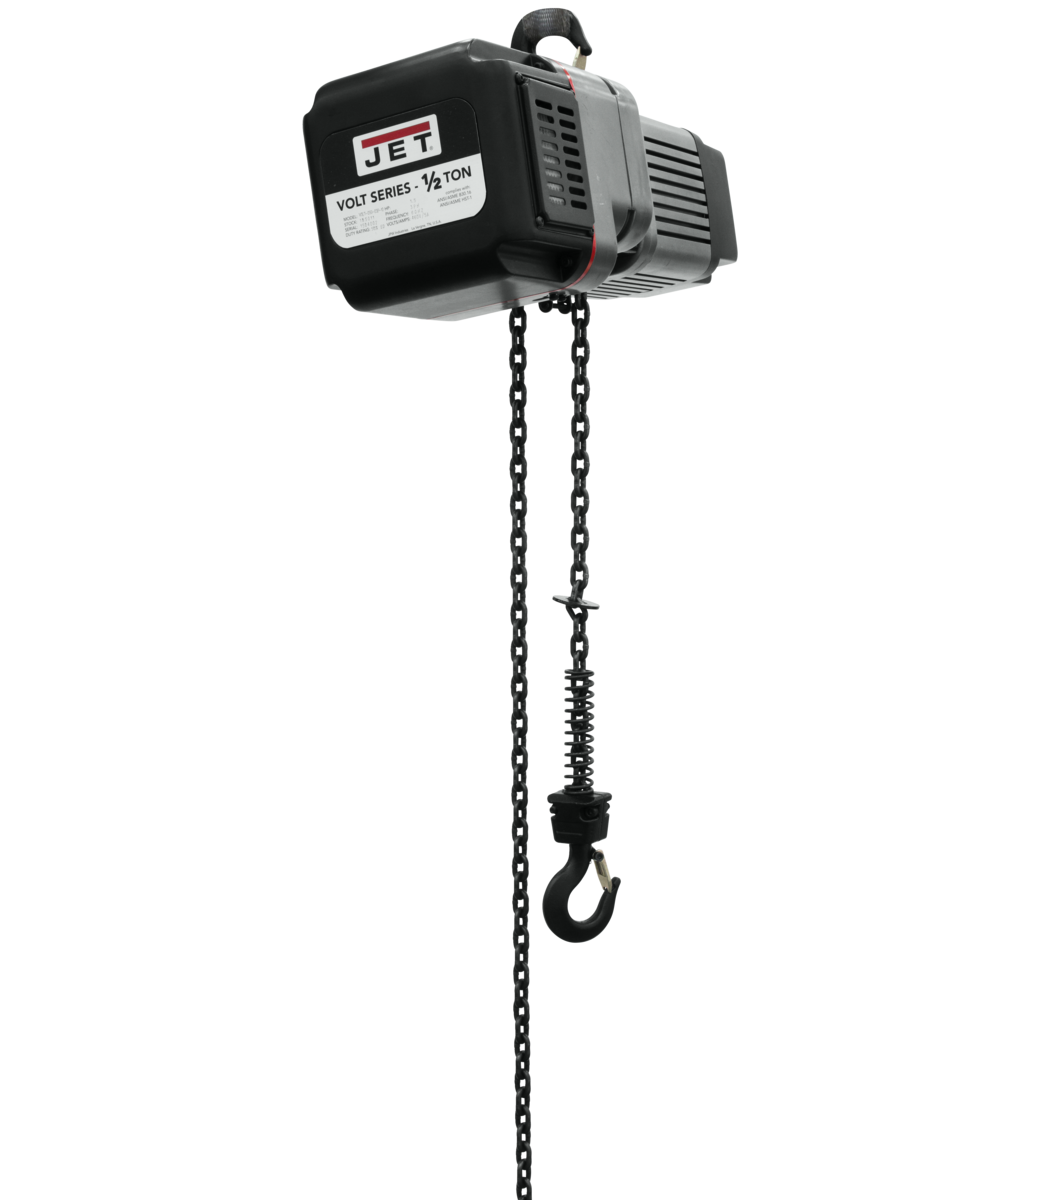 VOLT 1/2T VARIABLE-SPEED ELECTRIC HOIST 1PH/3PH 230V 10' LIFT